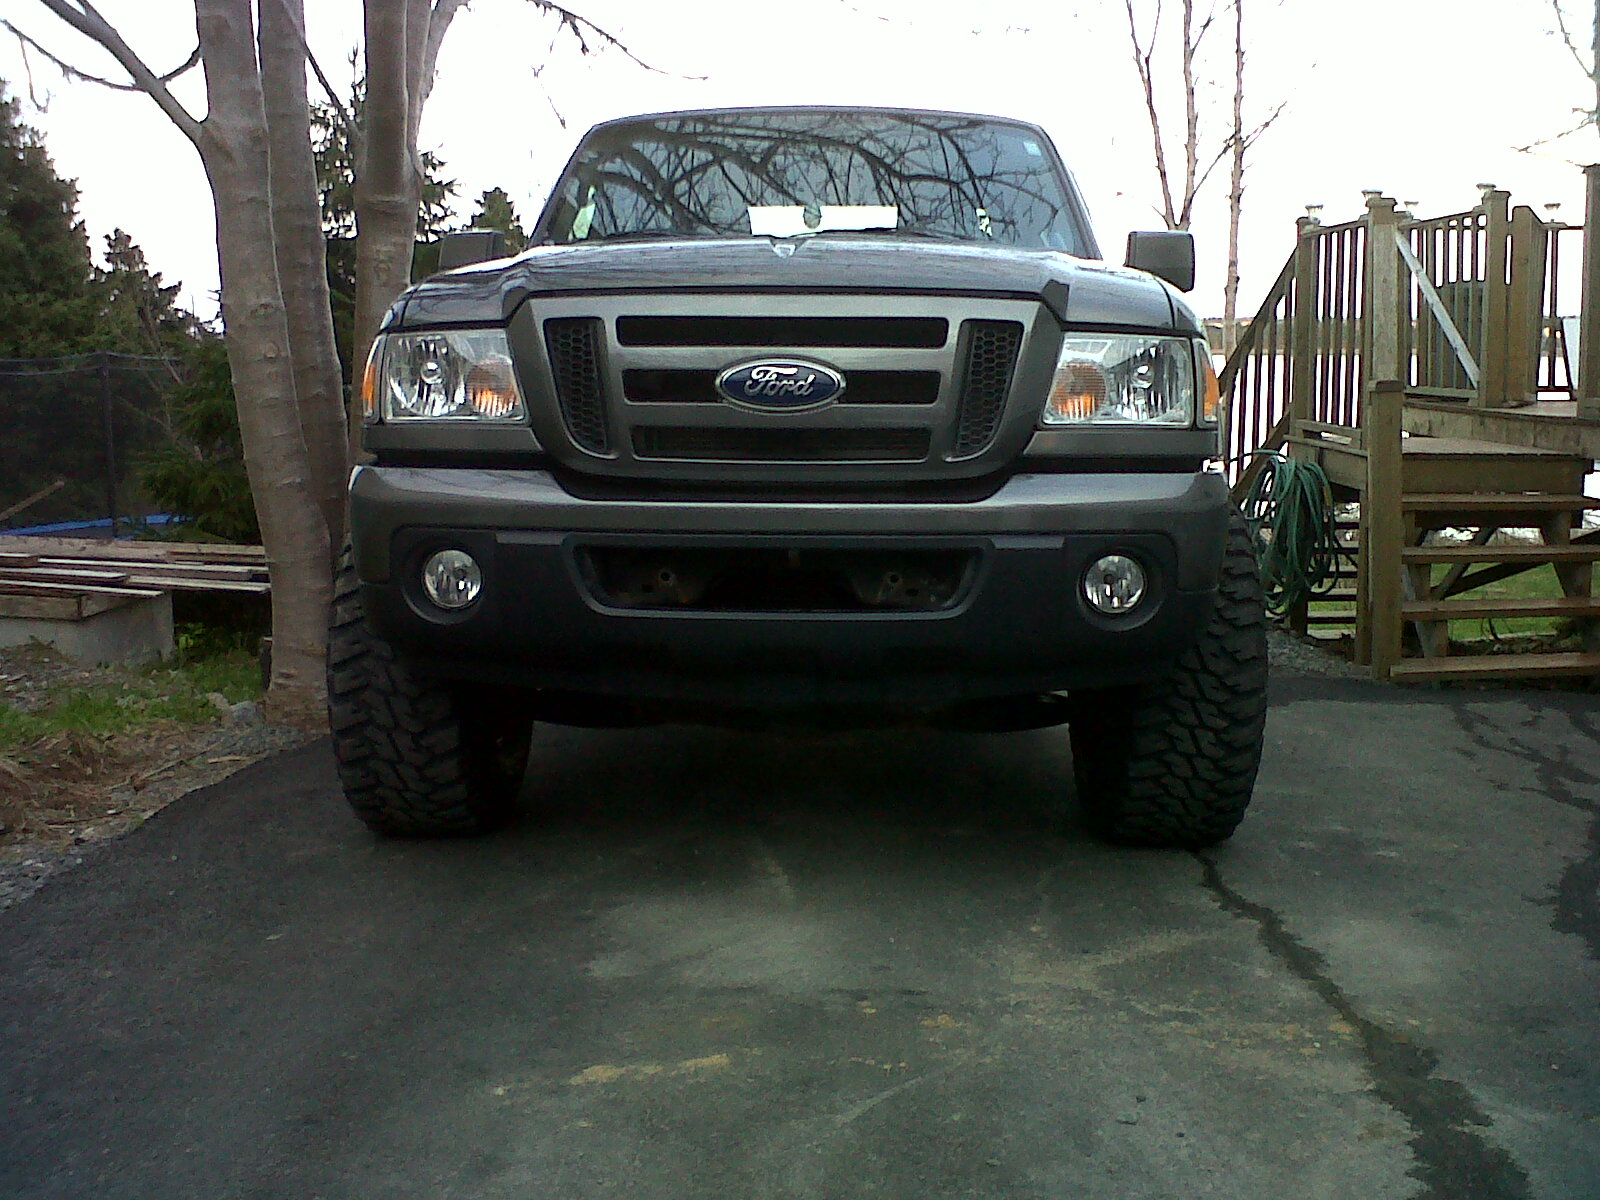 2011 Ford Ranger Lifted